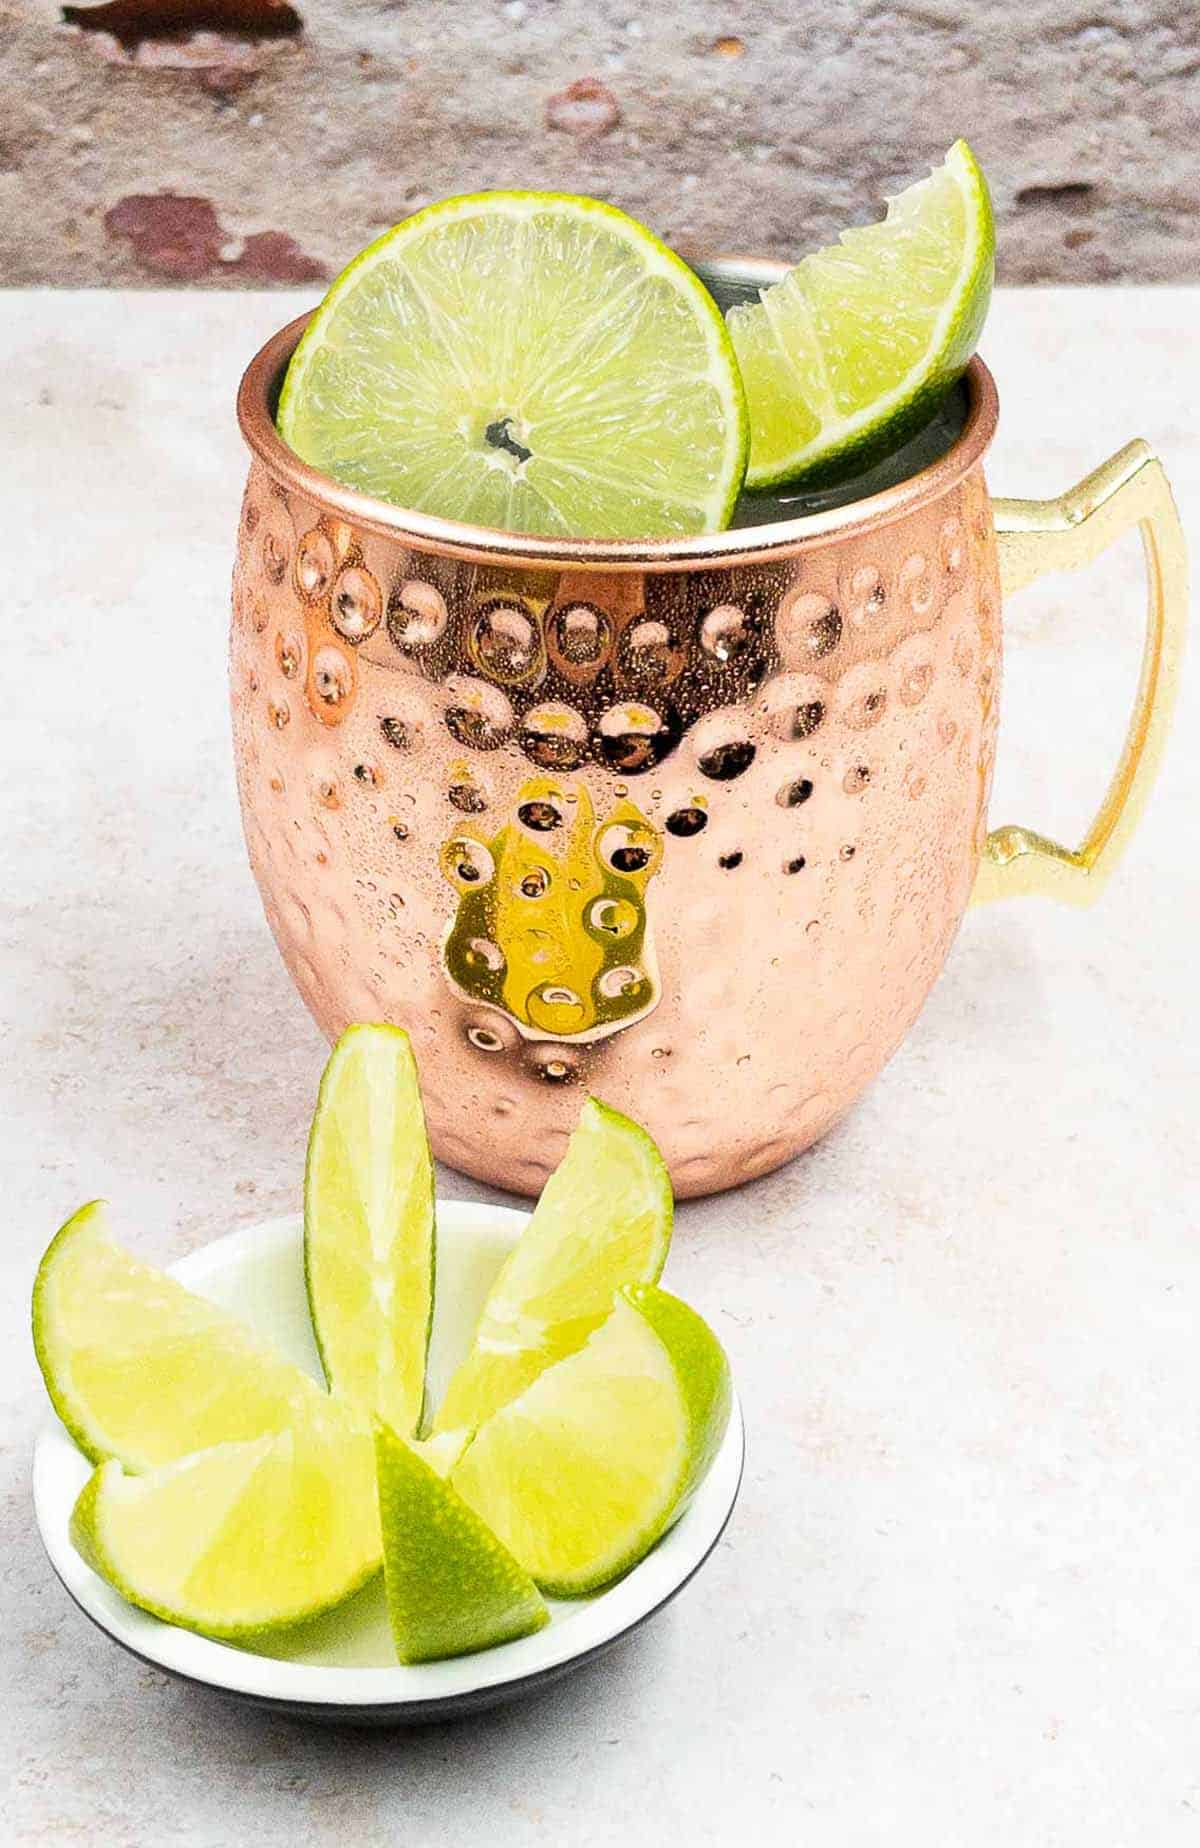 Tasty Mexican Mule Cocktail Drink in a Copper Mug and Slice of lime and wedges.